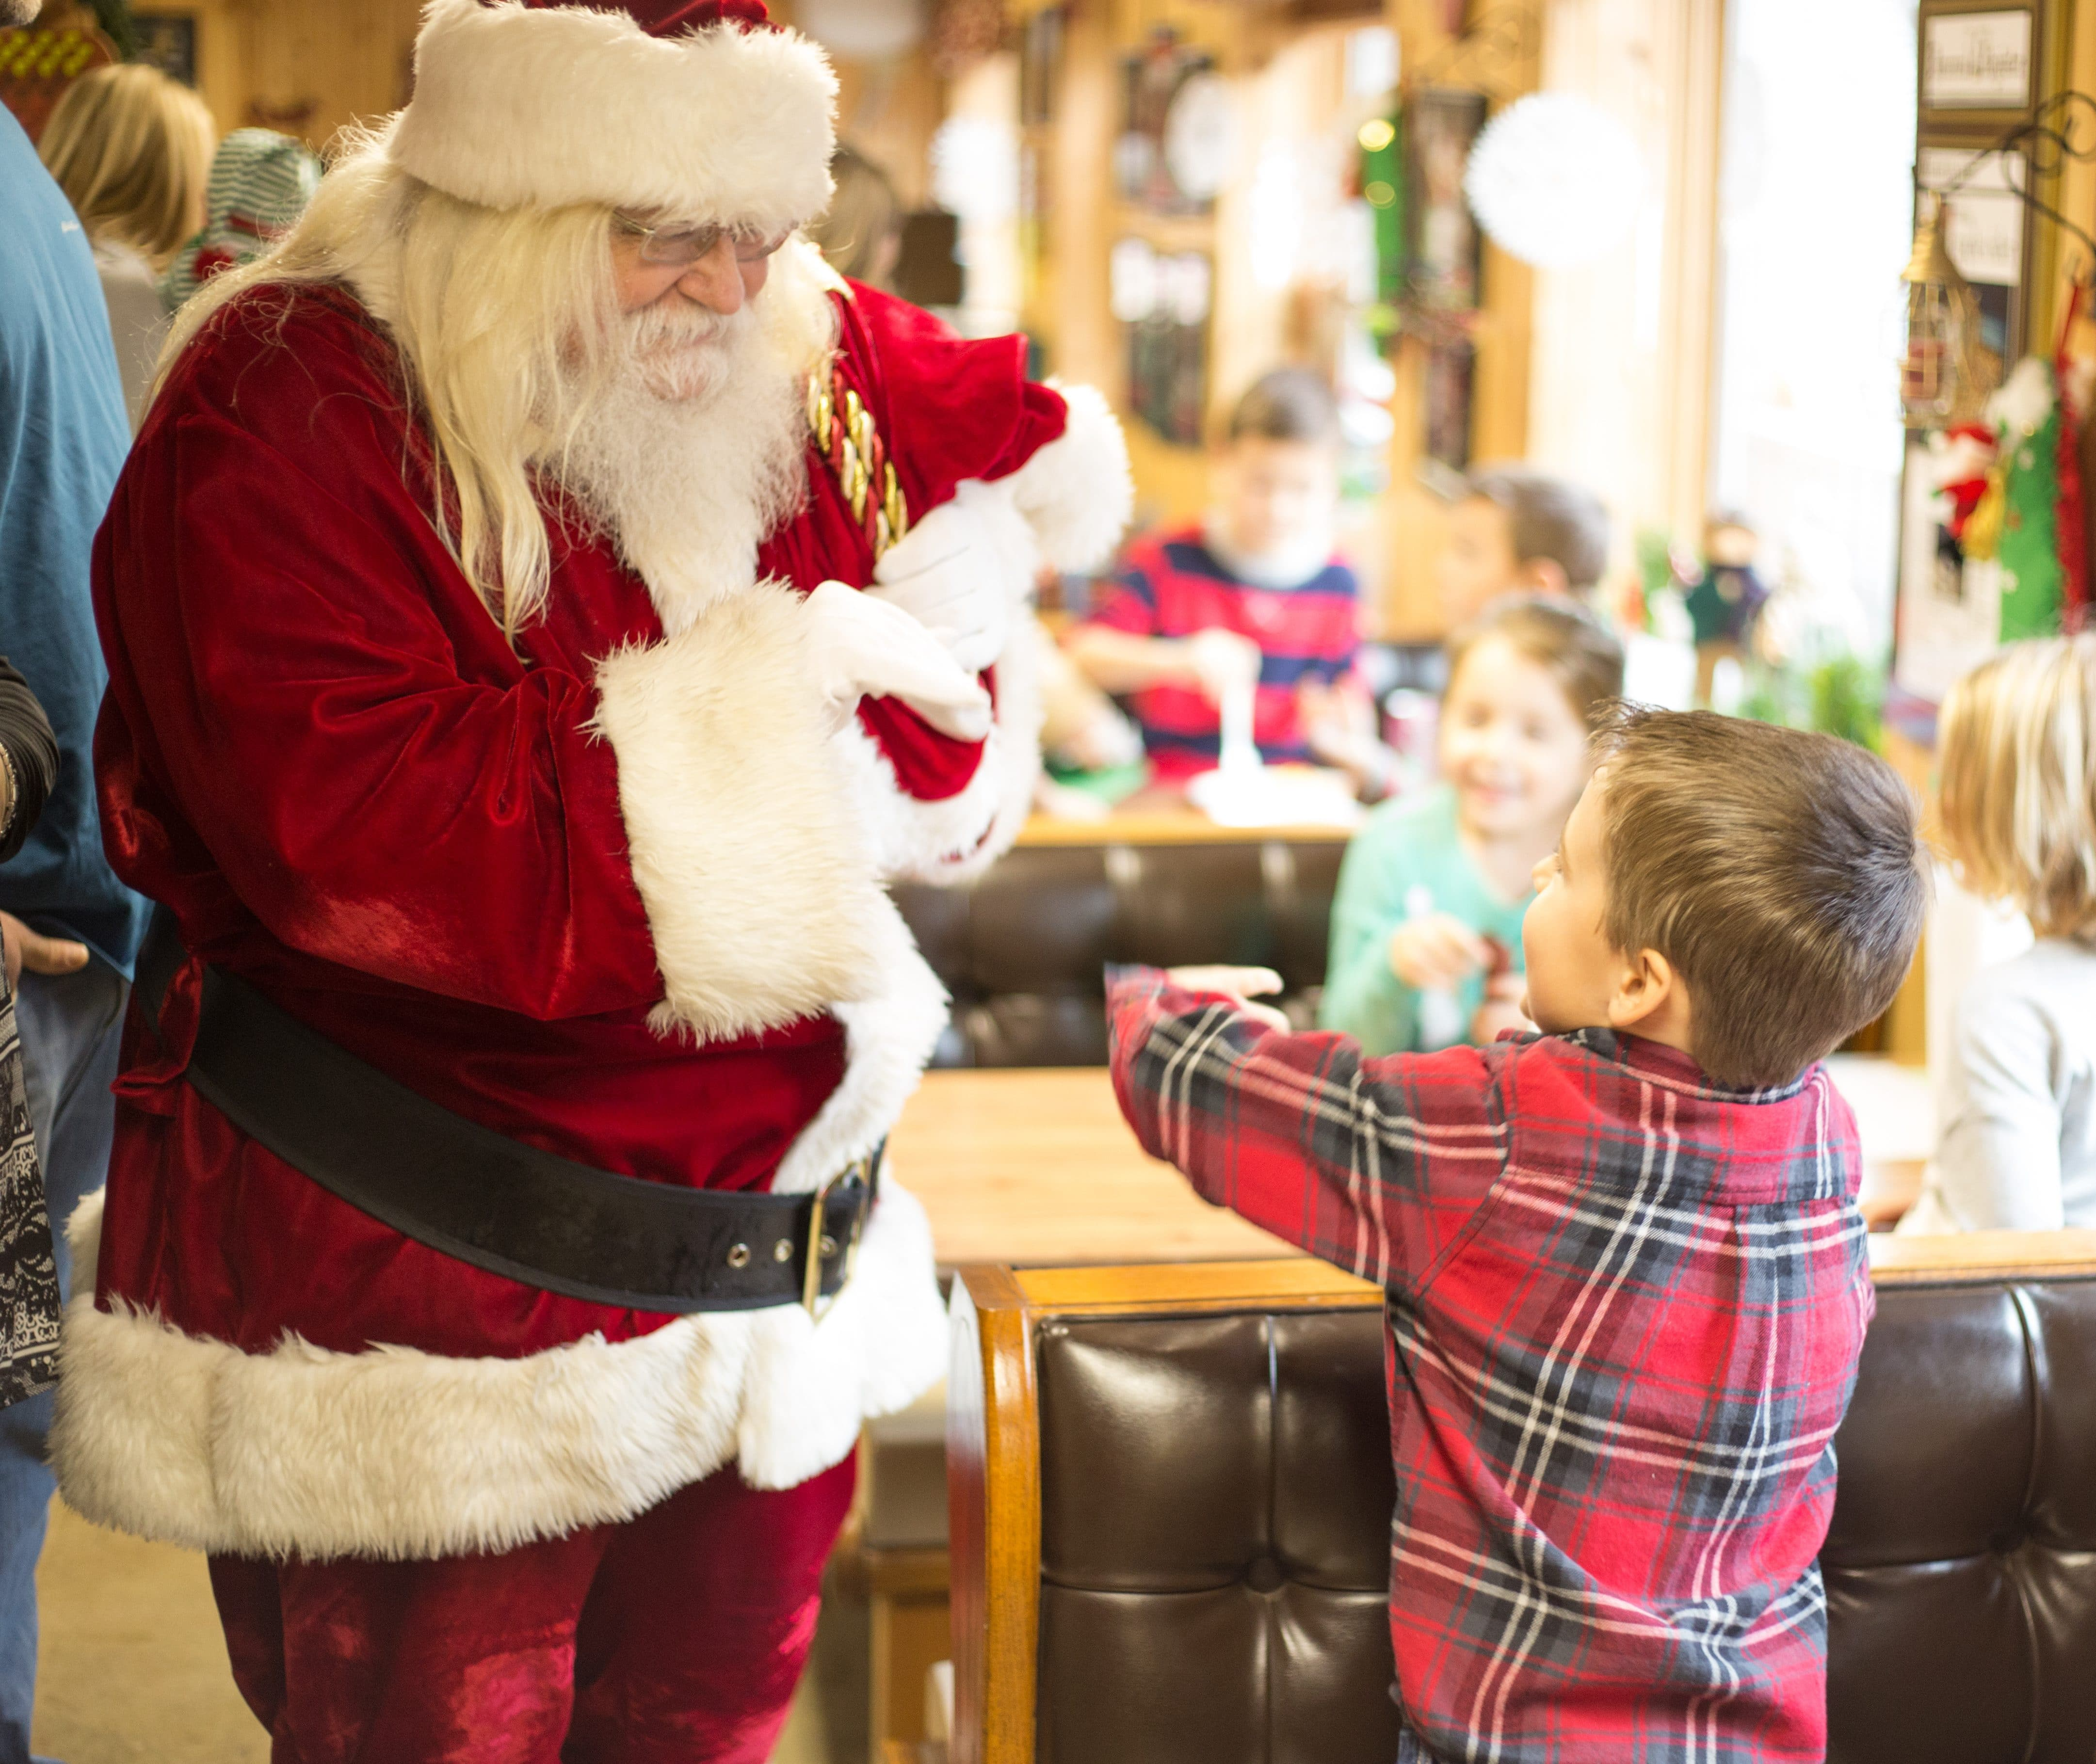 Christmas Brunch Near Me 2020 Breakfast with Santa 2020   Curtis Orchard & Pumpkin Patch